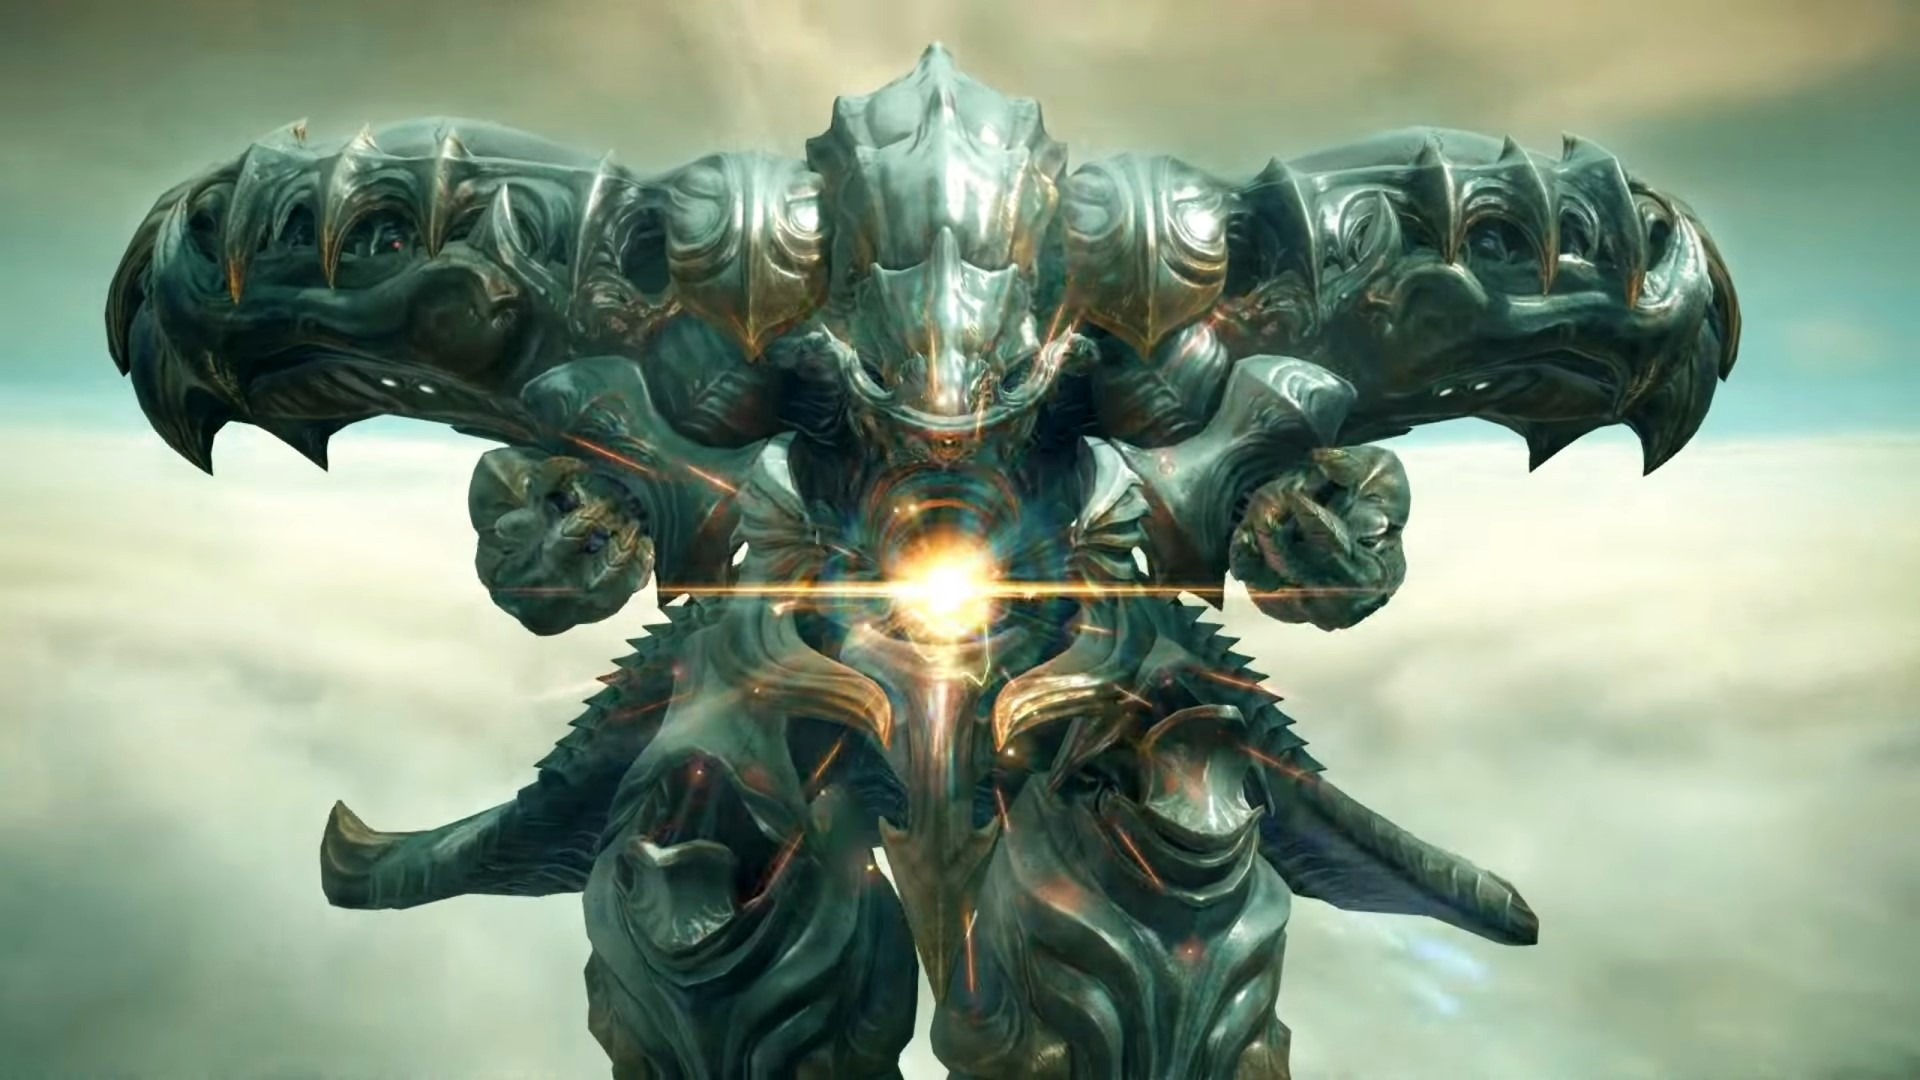 Final Fantasy 14's patch 5.5 trailer has arrived